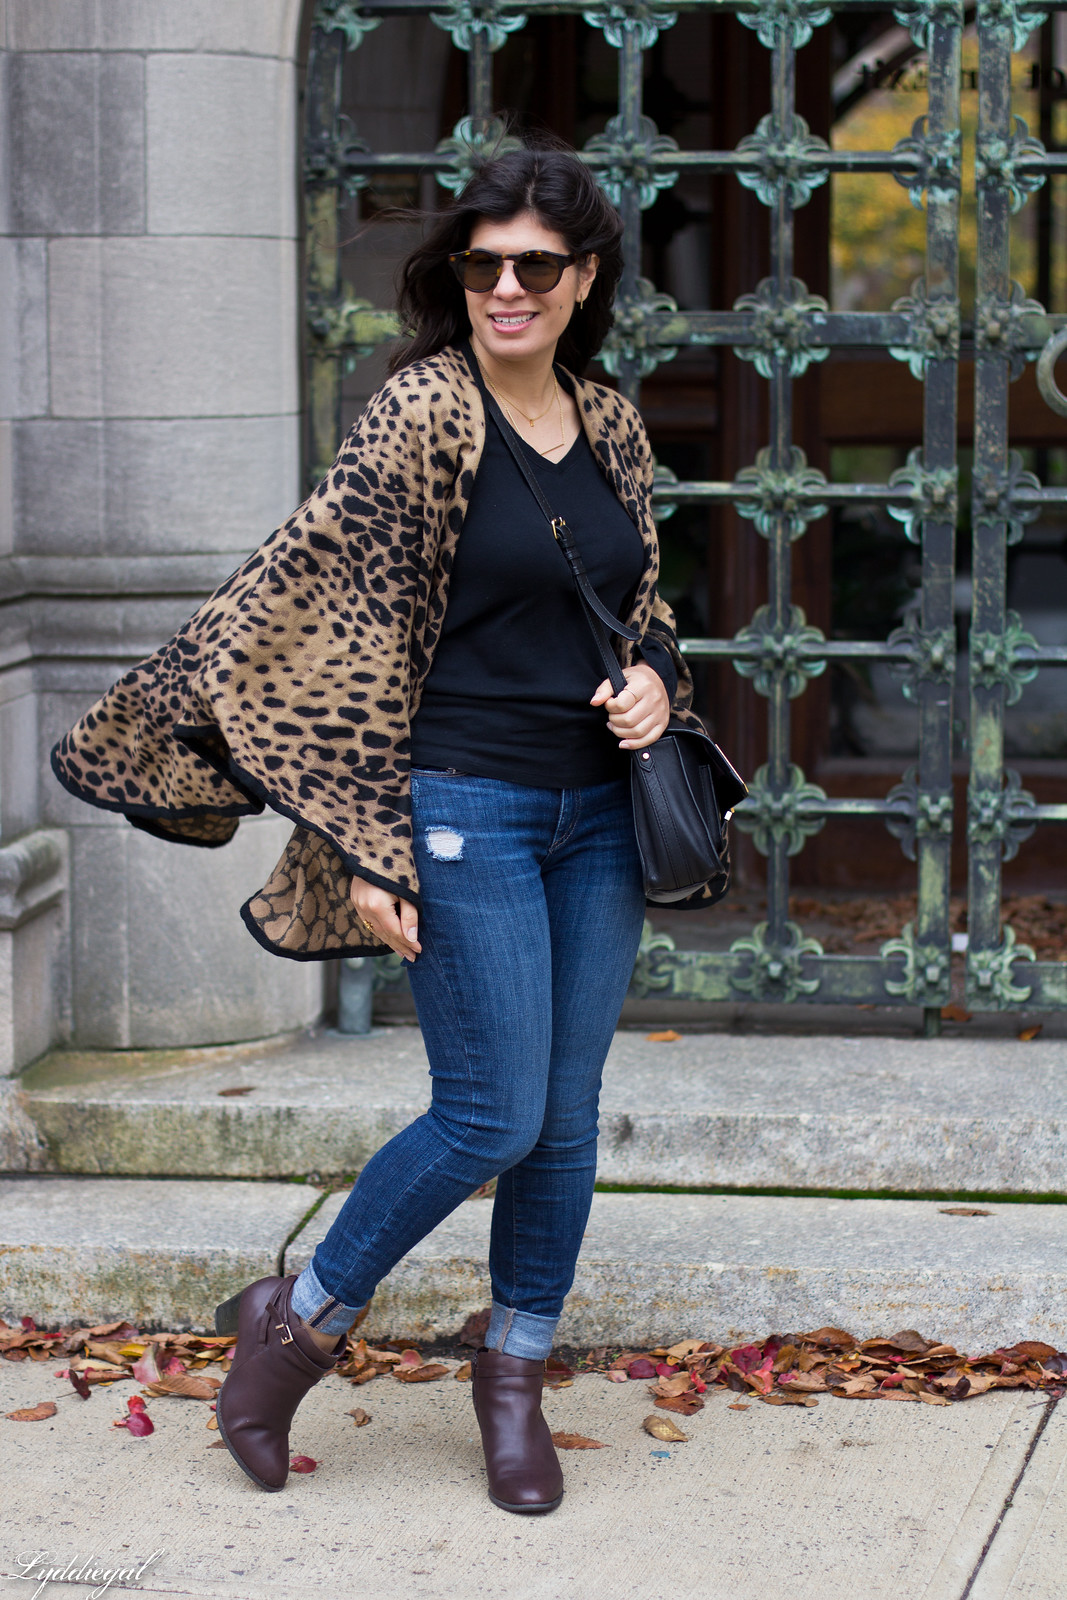 leopard poncho, jeans, black tee, brown booties.jpg